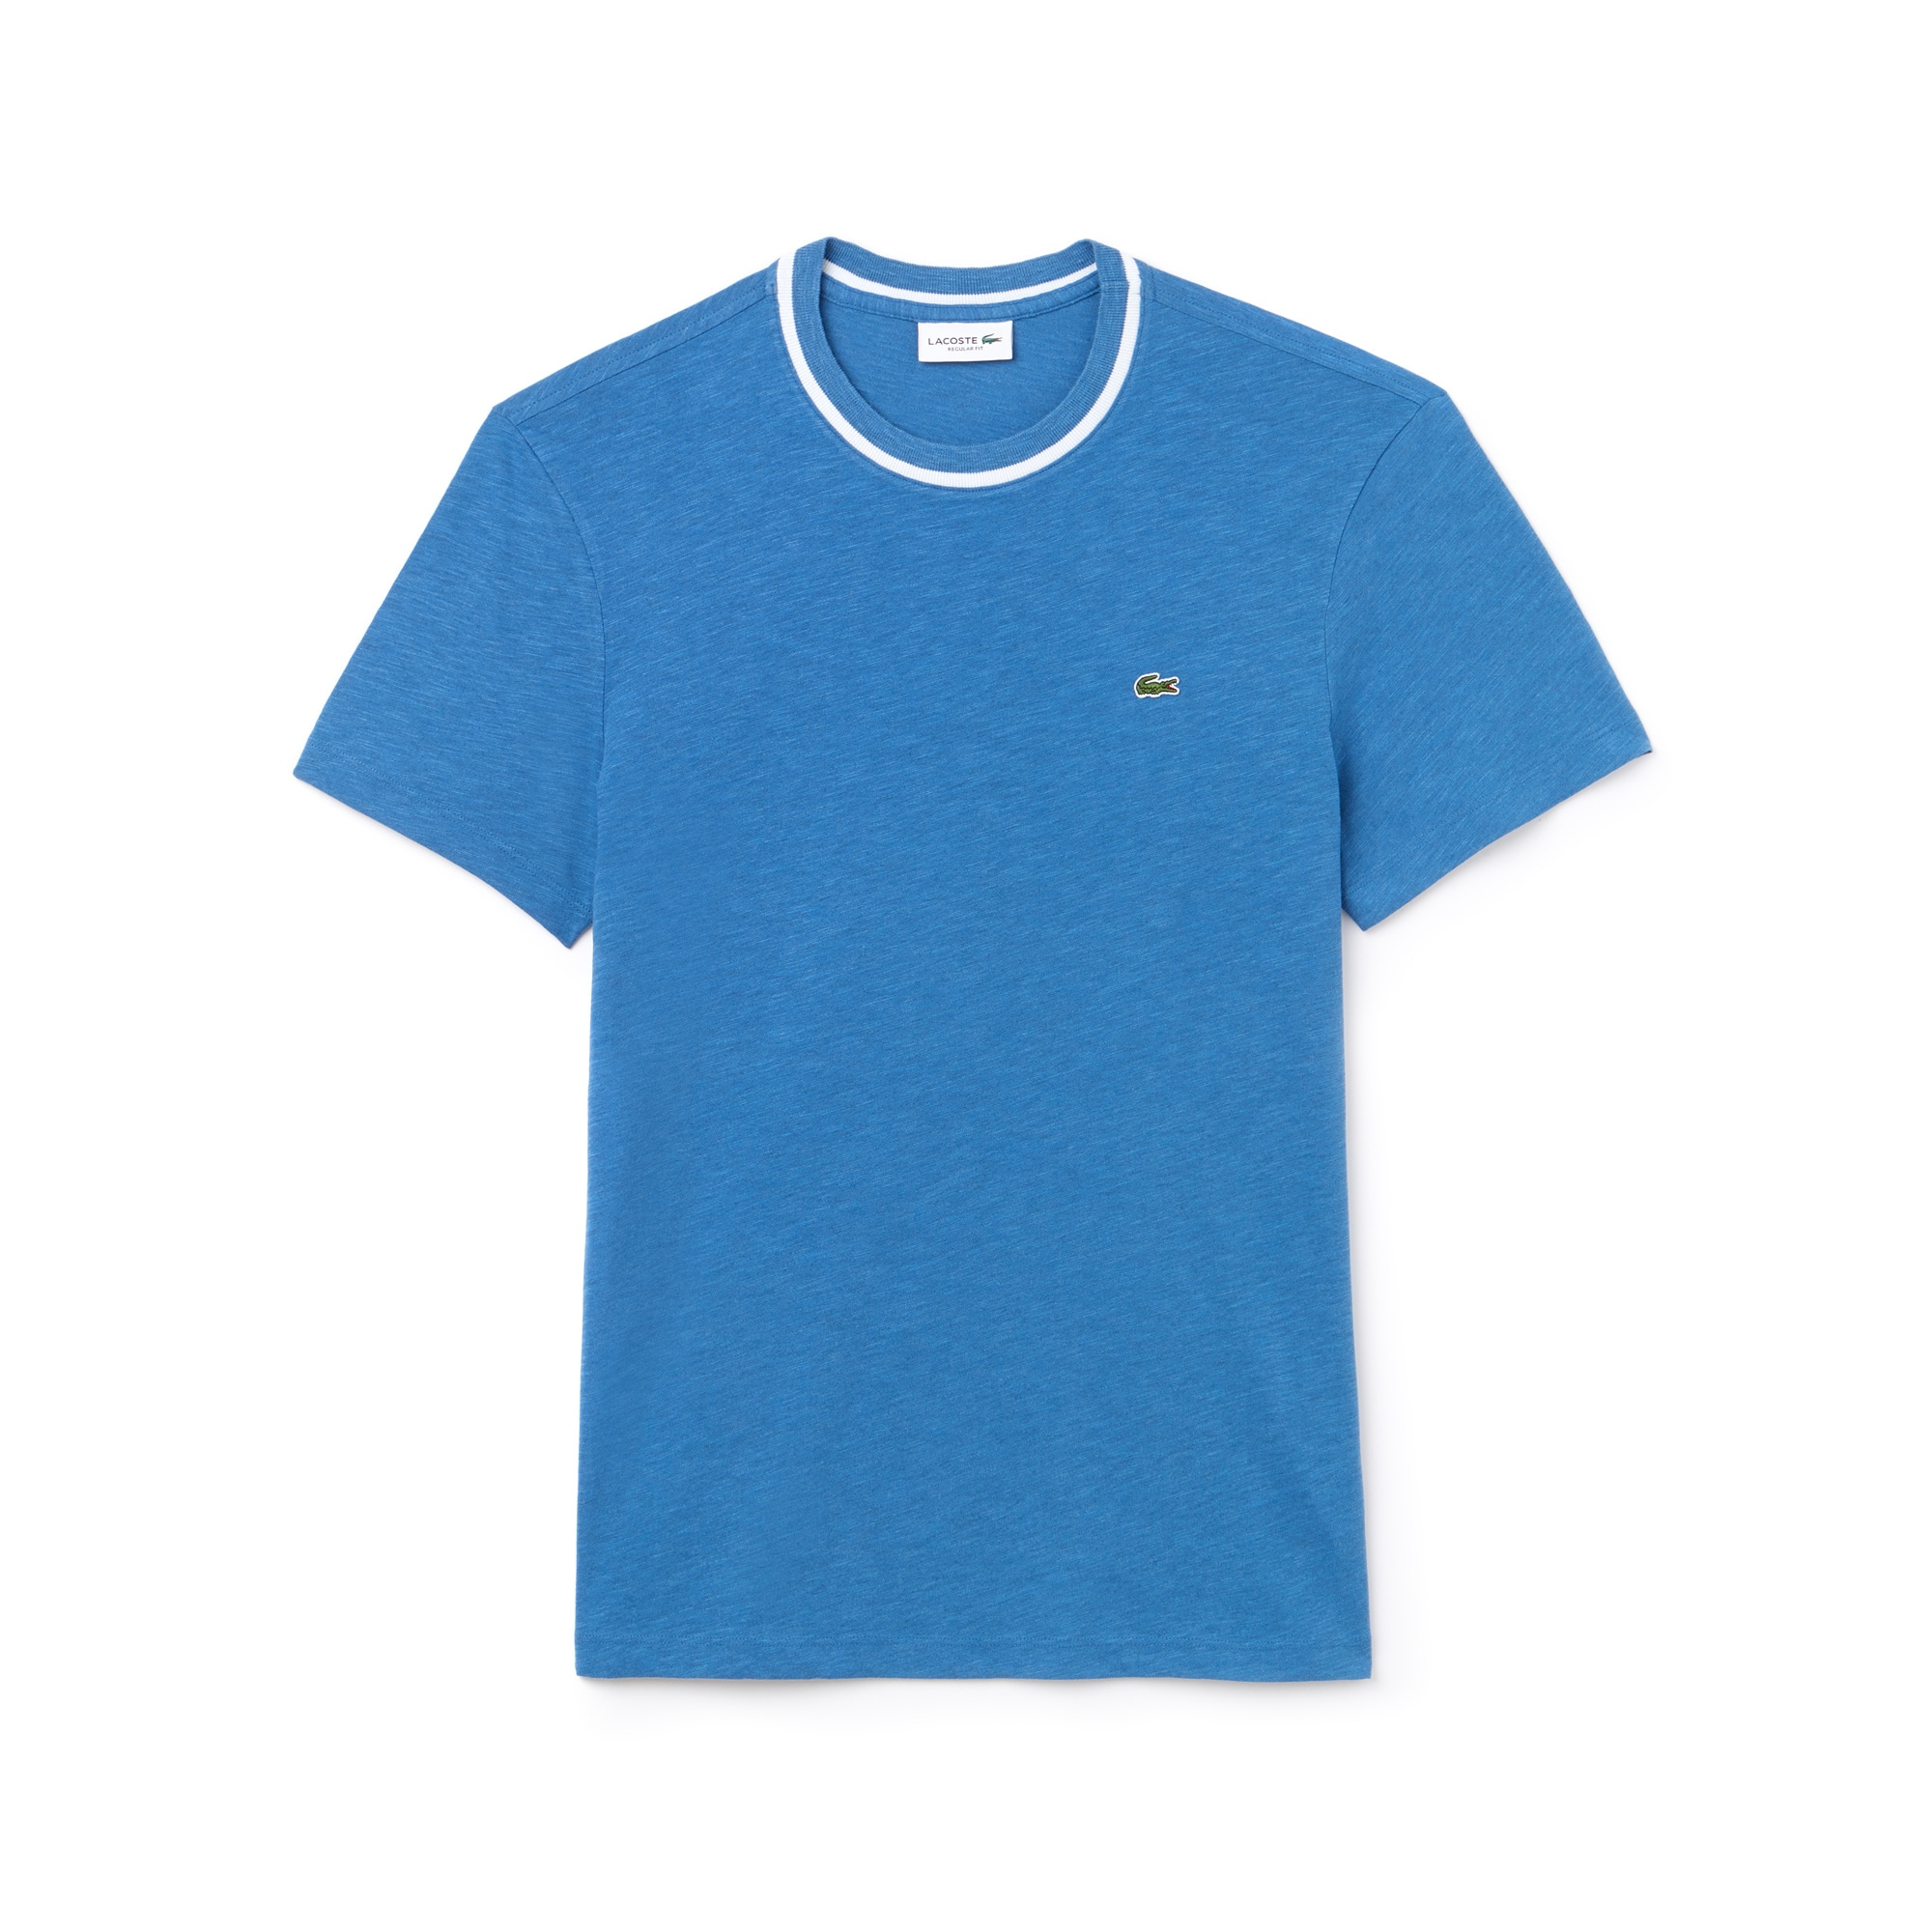 Men's Crew Neck Flamme Cotton Jersey T-shirt